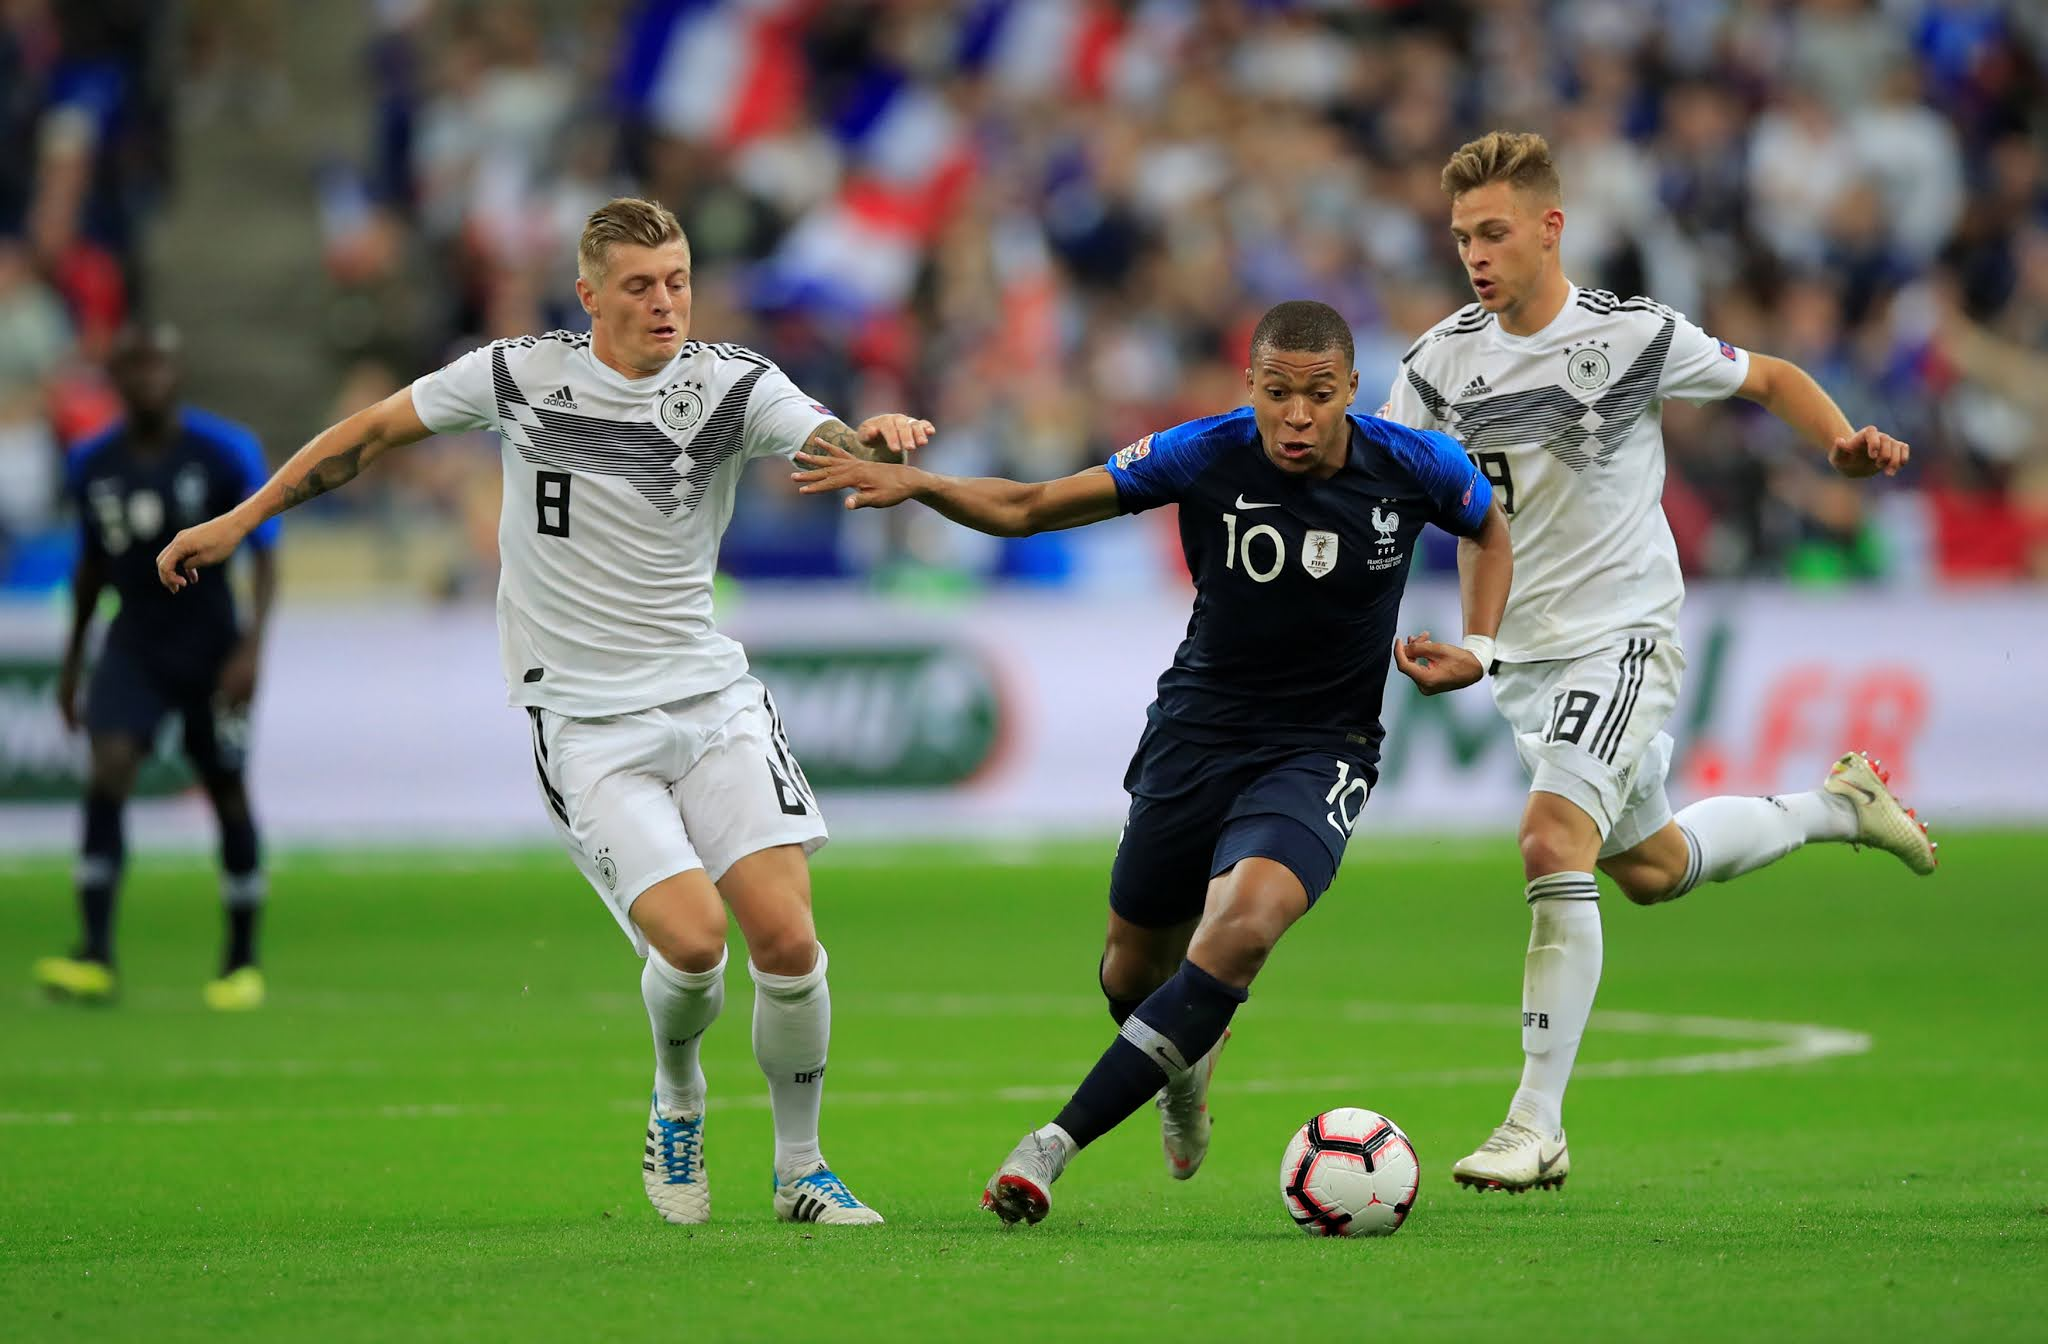 Kylian Mbappe will be hoping to give France the advantage against Germany